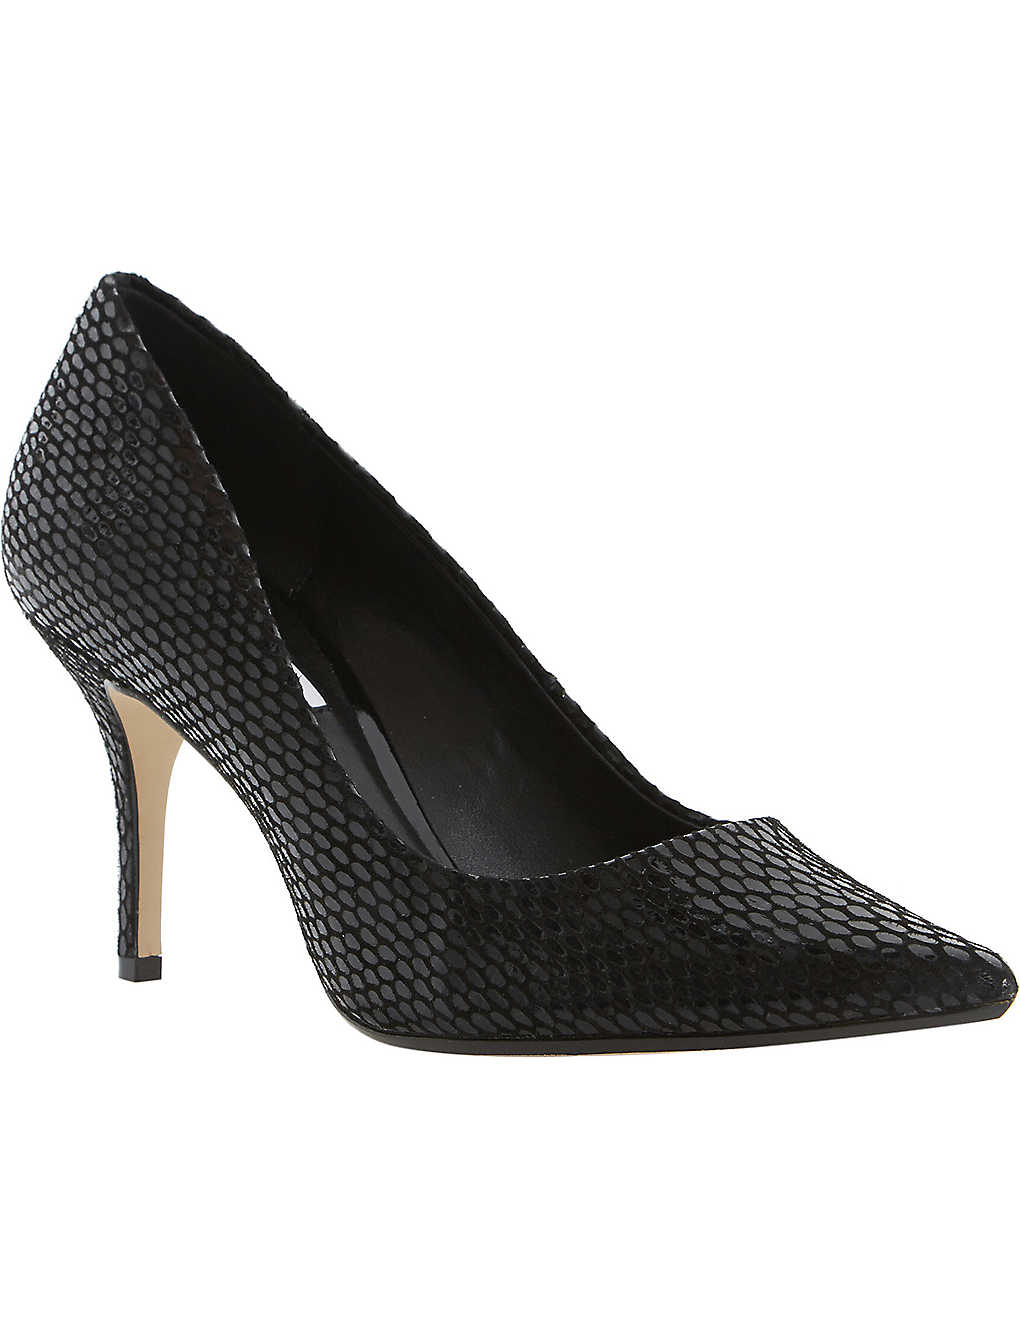 c77223a1a03 DUNE - Alina leather pointed toe court shoes | Selfridges.com